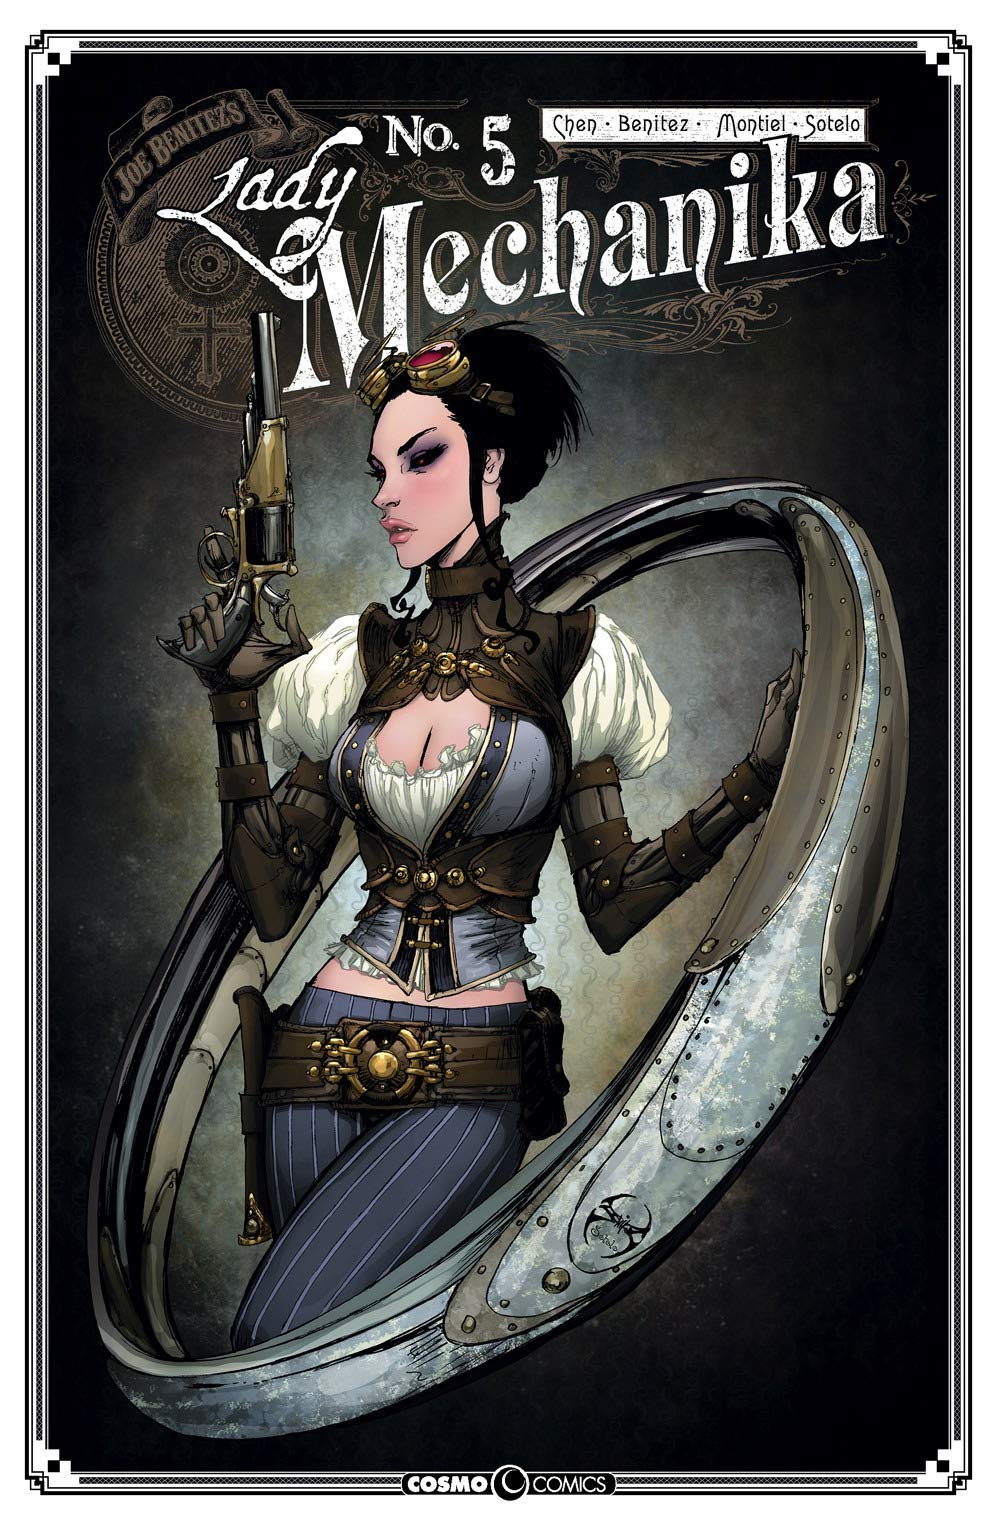 Lady Mechanika vol. 5